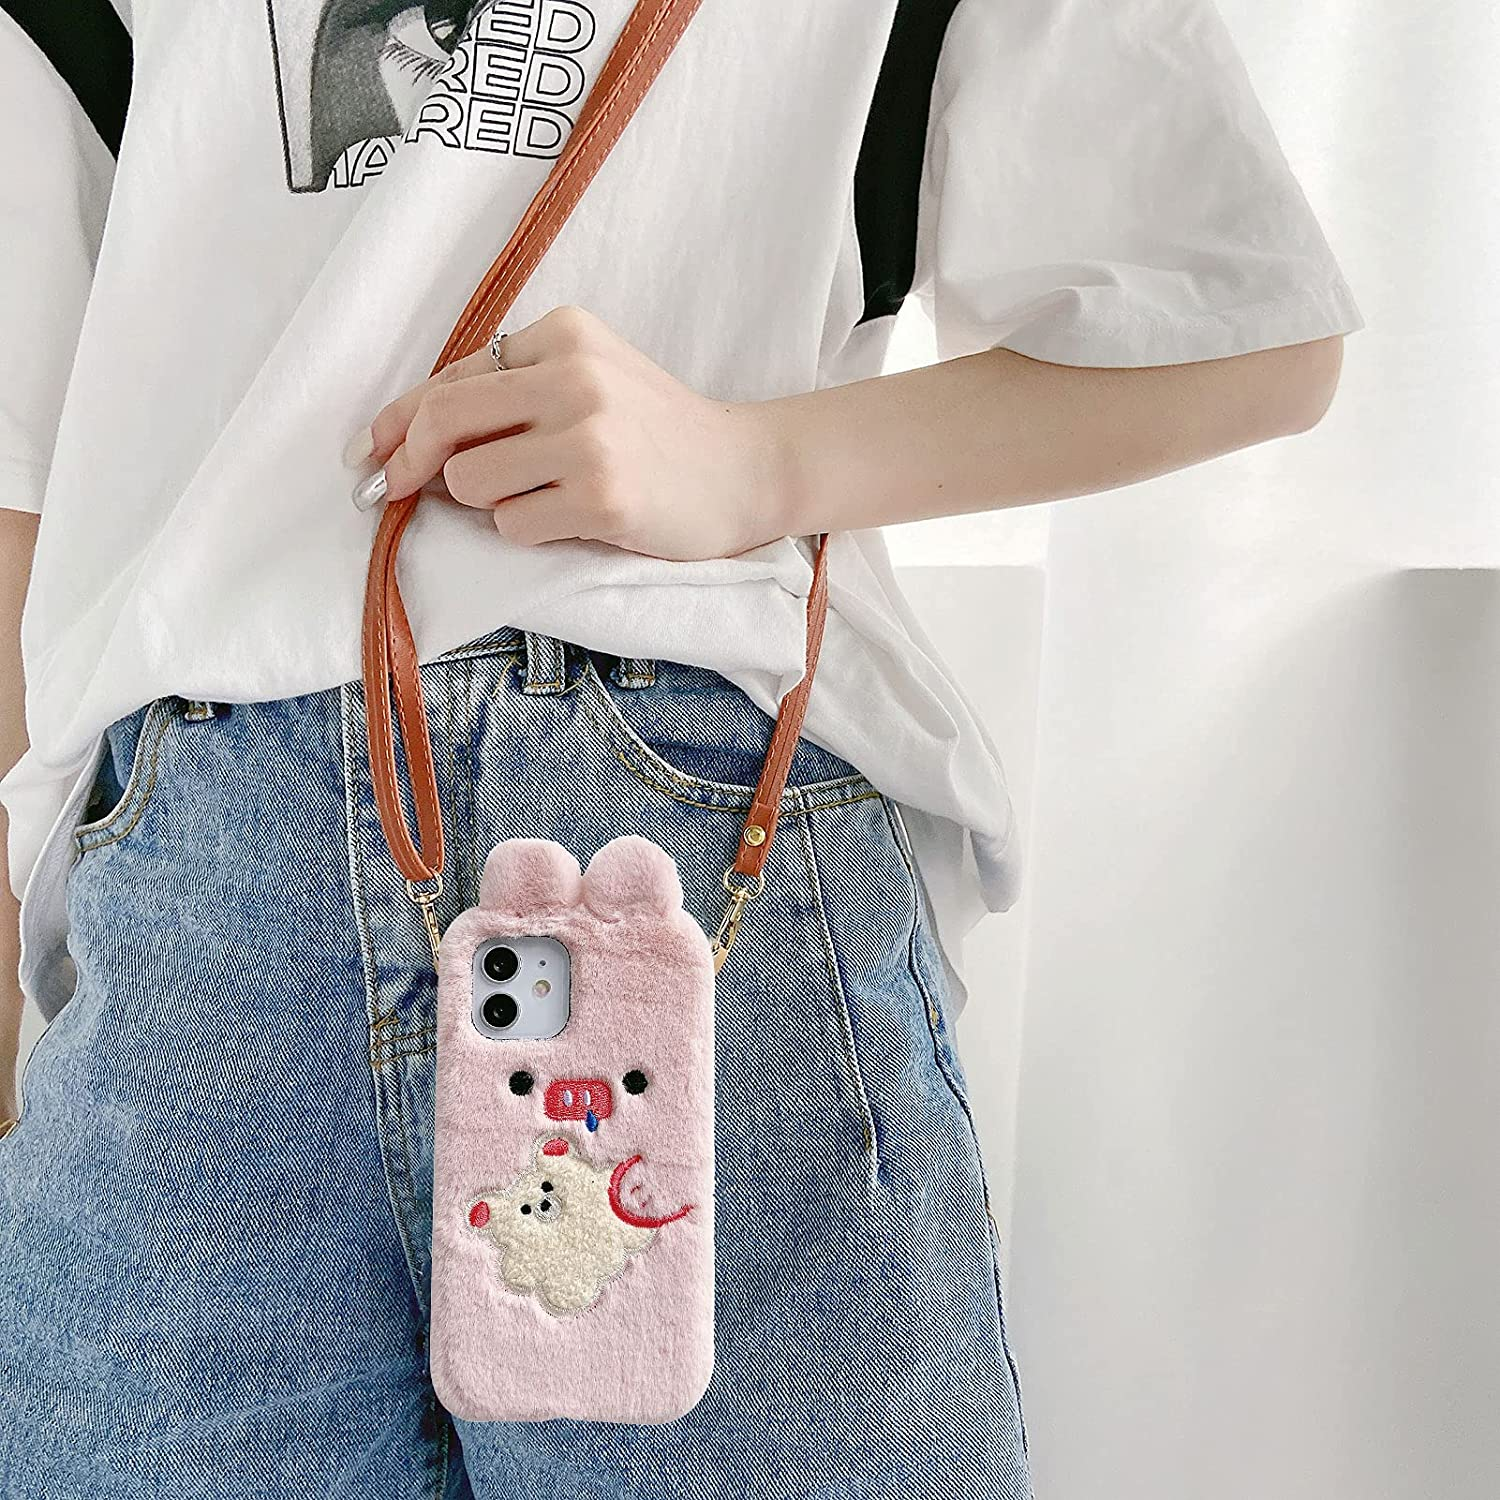 Fluffy Case for iPhone 13 Pro 6.1 Inch, Girlyard Super Cute Fuzzy Soft Faux Fur Plush Doll Shell with PU Leather Shoulder Strap Furry Shockproof Protective Cover for Women Girls, Pink, Pig Hugs Bear